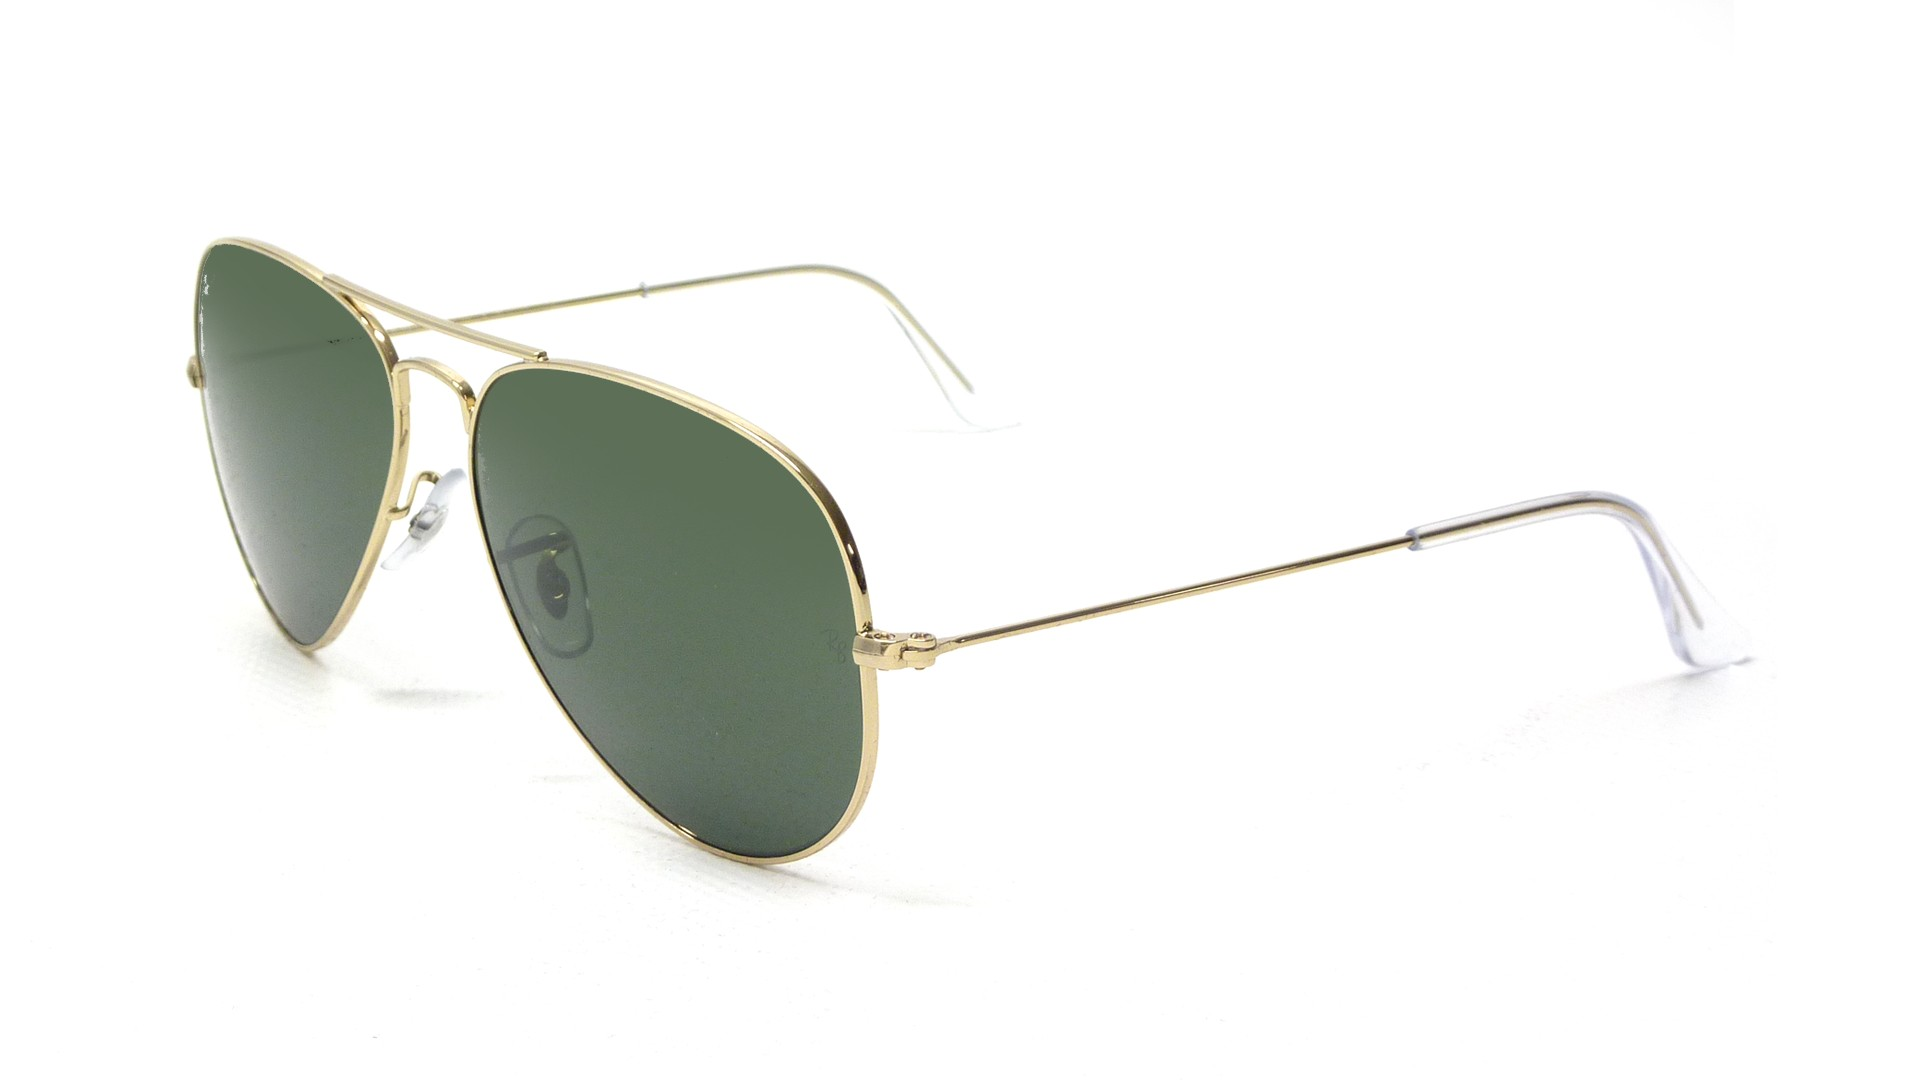 74331bbb2e6 Sunglasses Ray-Ban Aviator Large Metal II Gold RB3026 L2846 62-14 Large